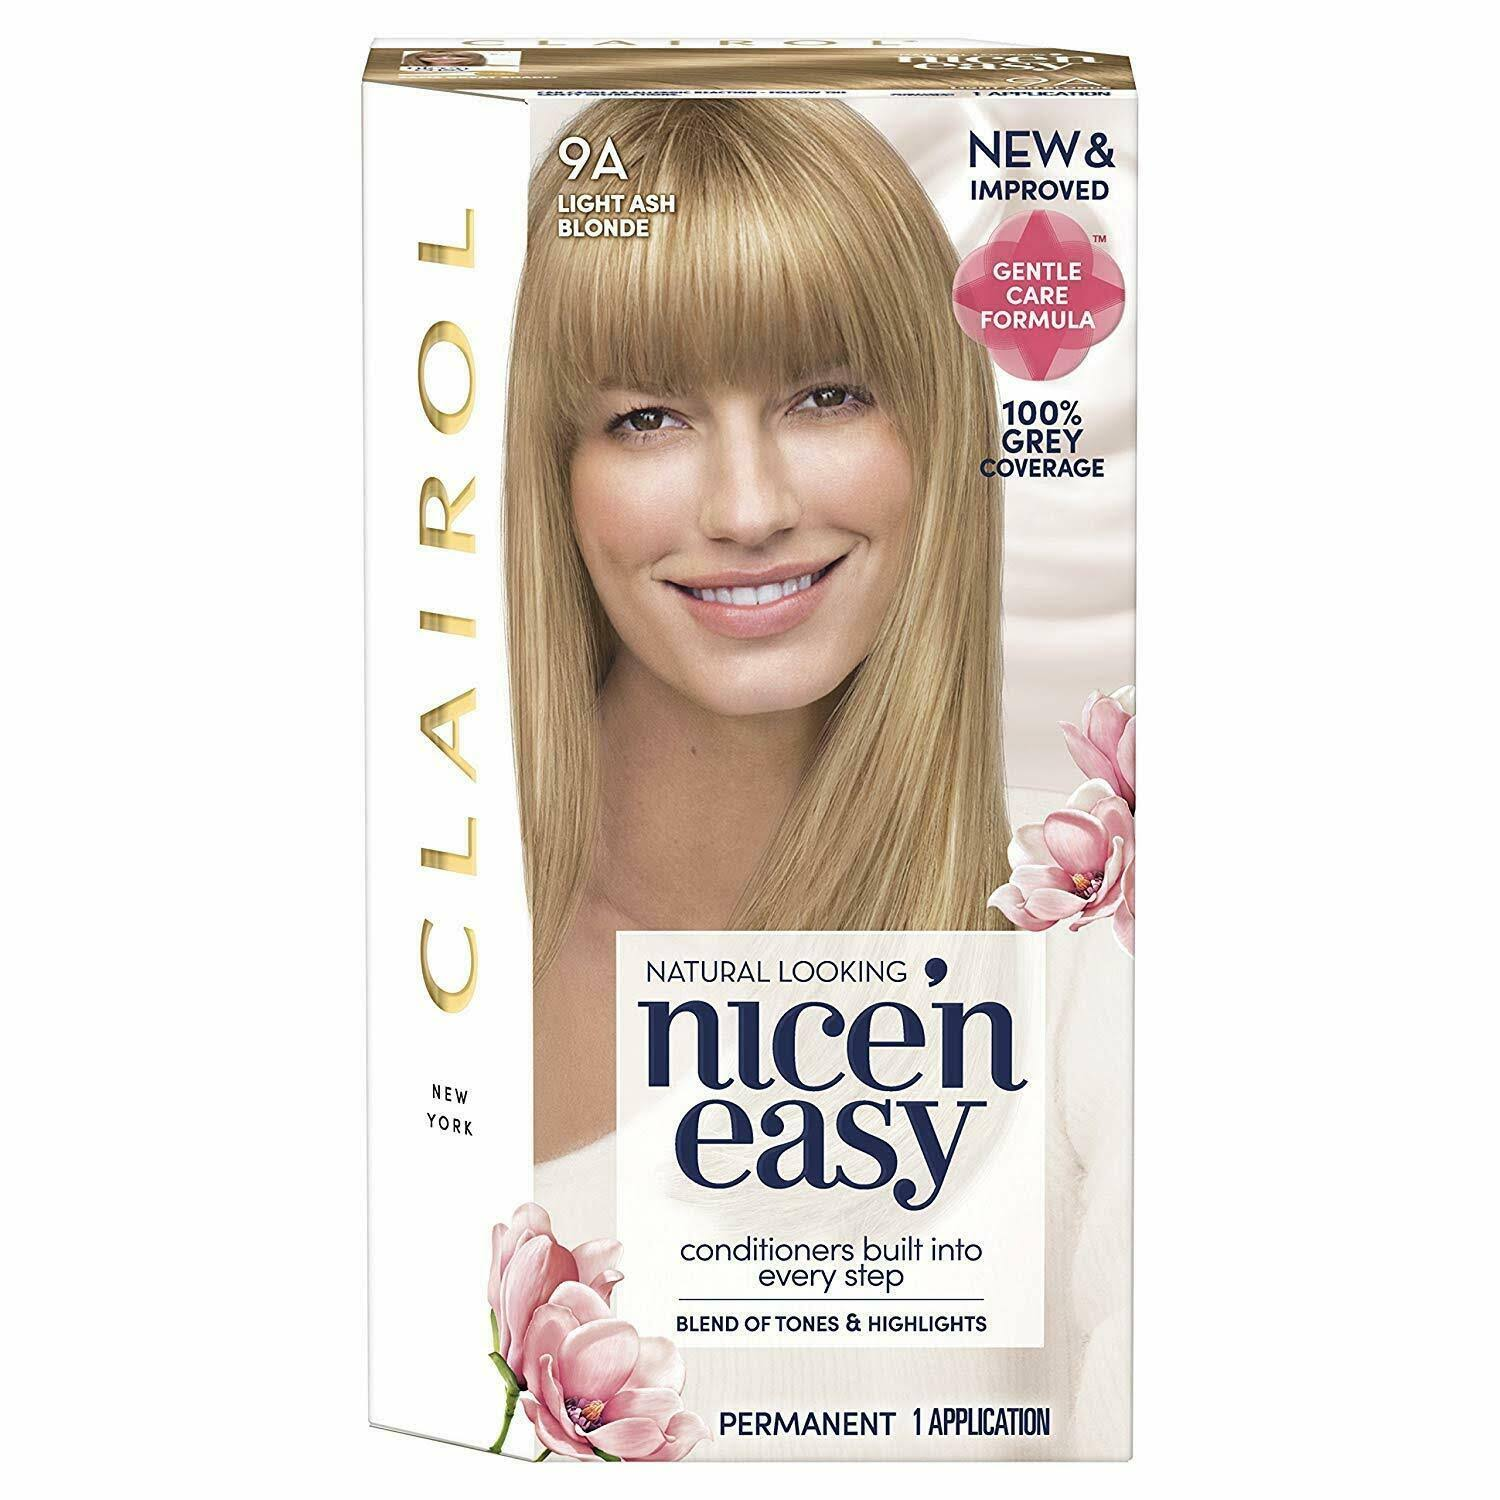 Nice N Easy Permanent Hair Dye - 9A Light Ash Blonde